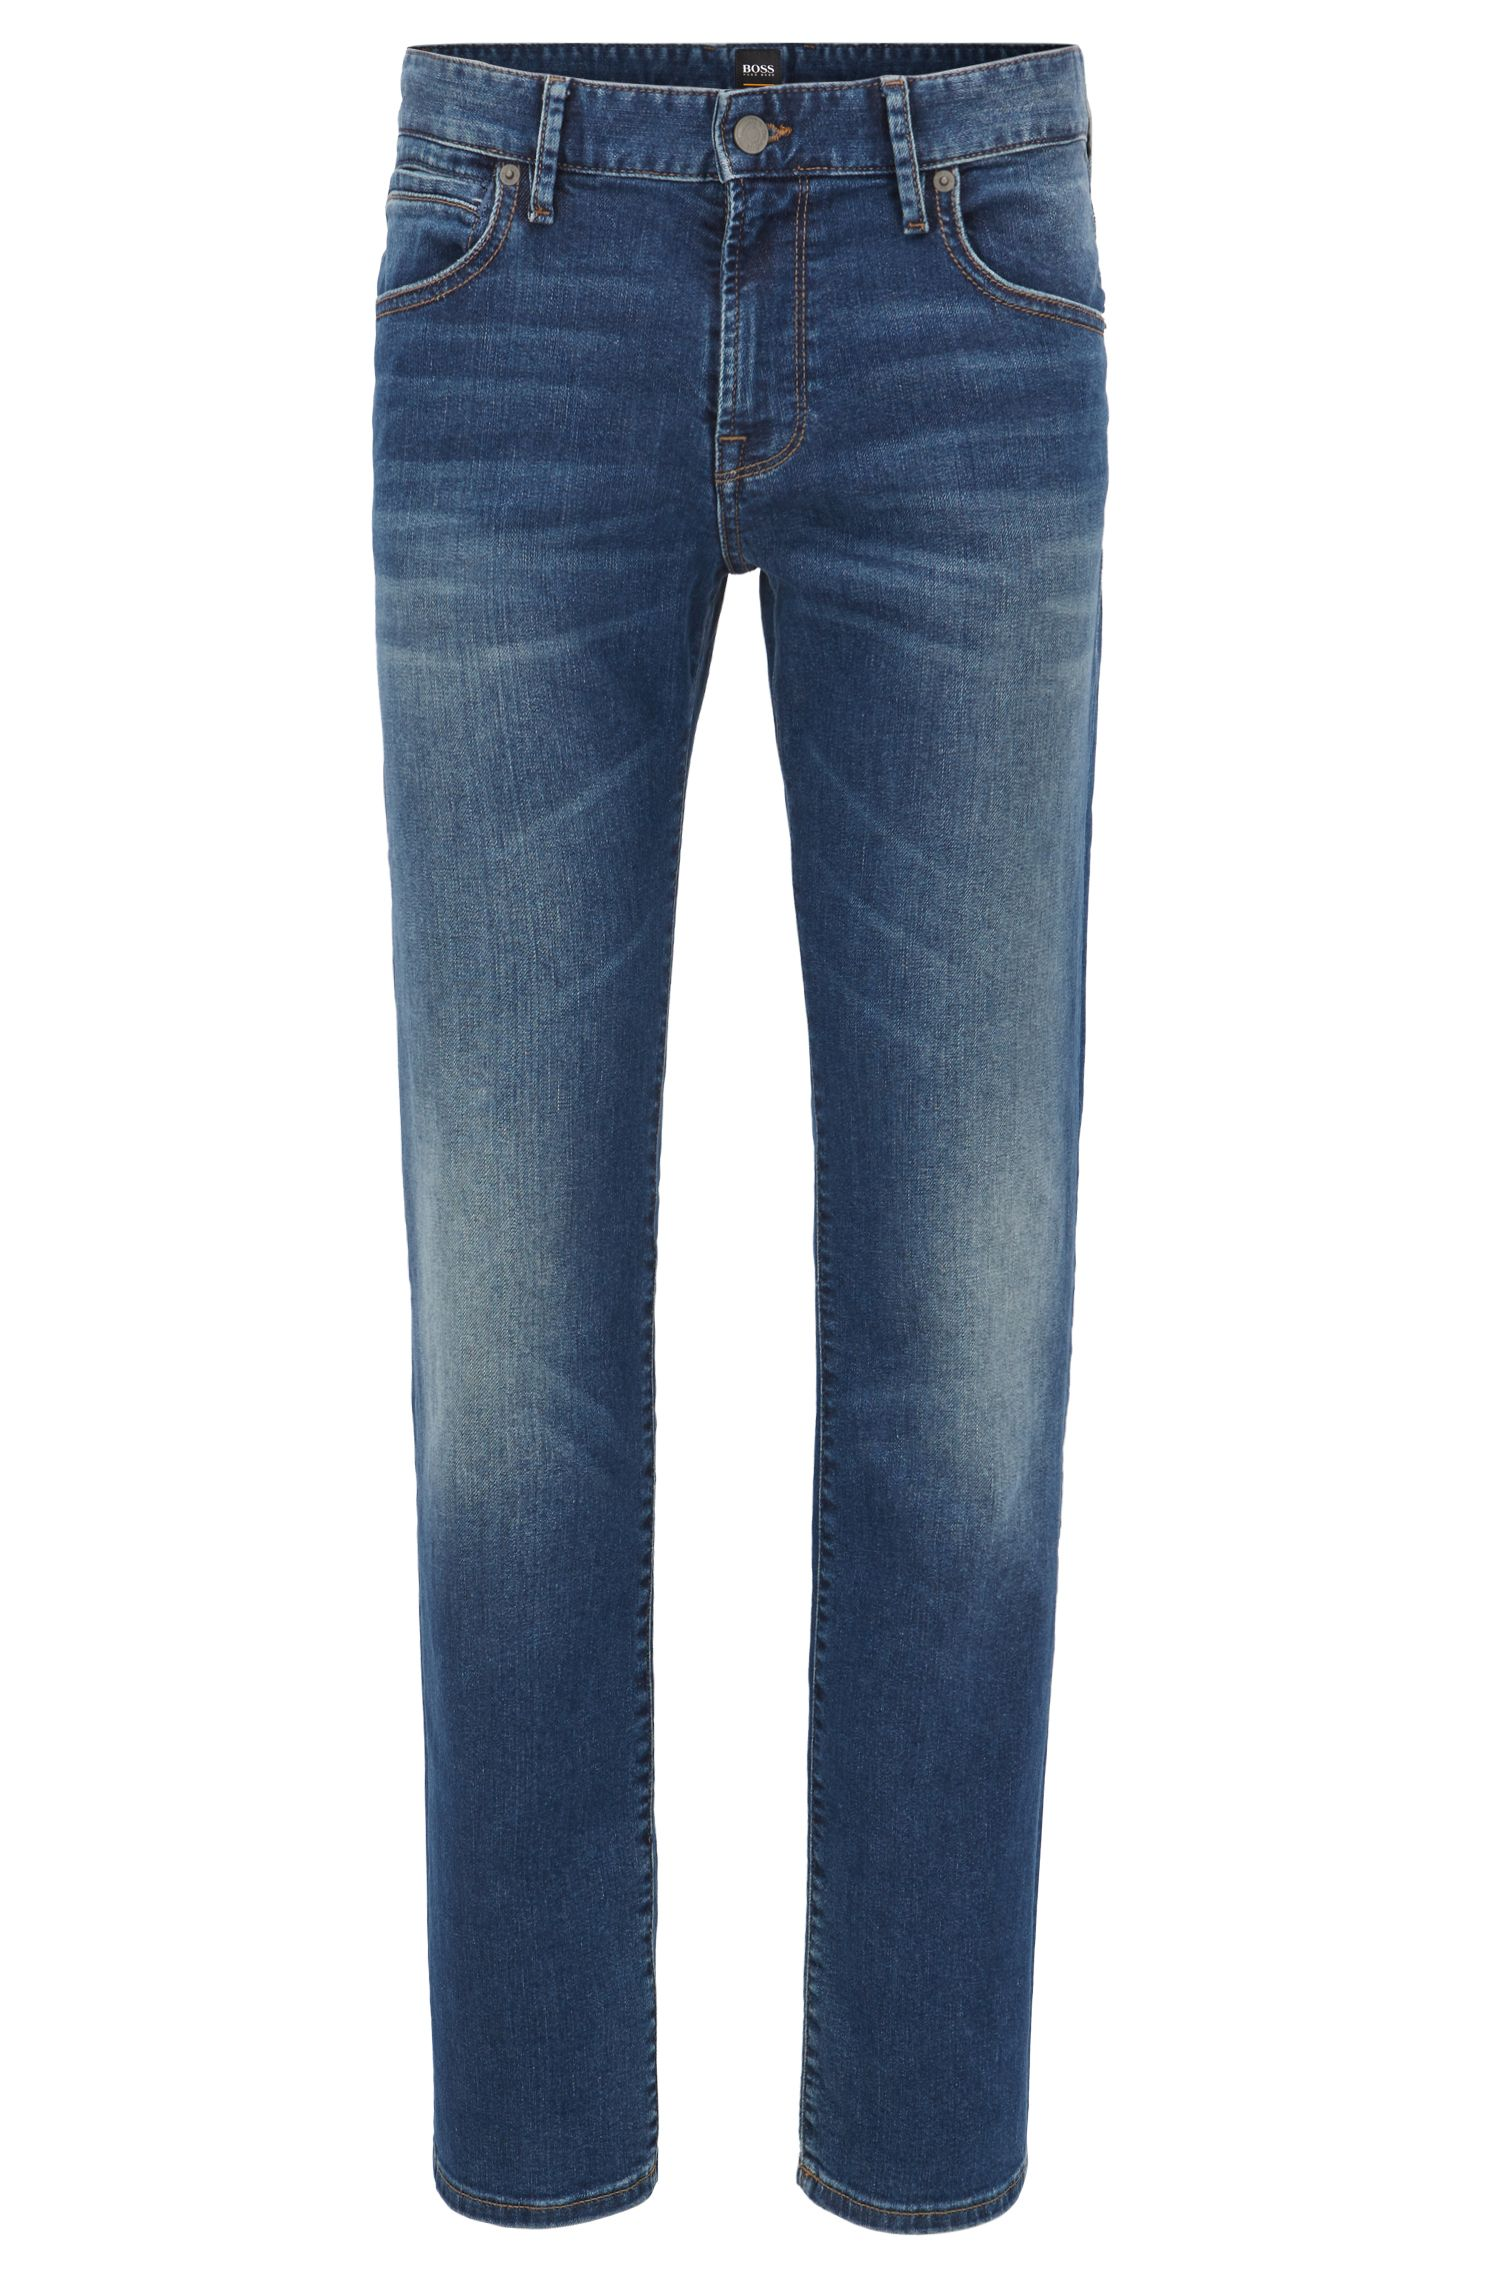 Regular-Fit Jeans aus indigofarbenem Used-Denim von BOSS Orange